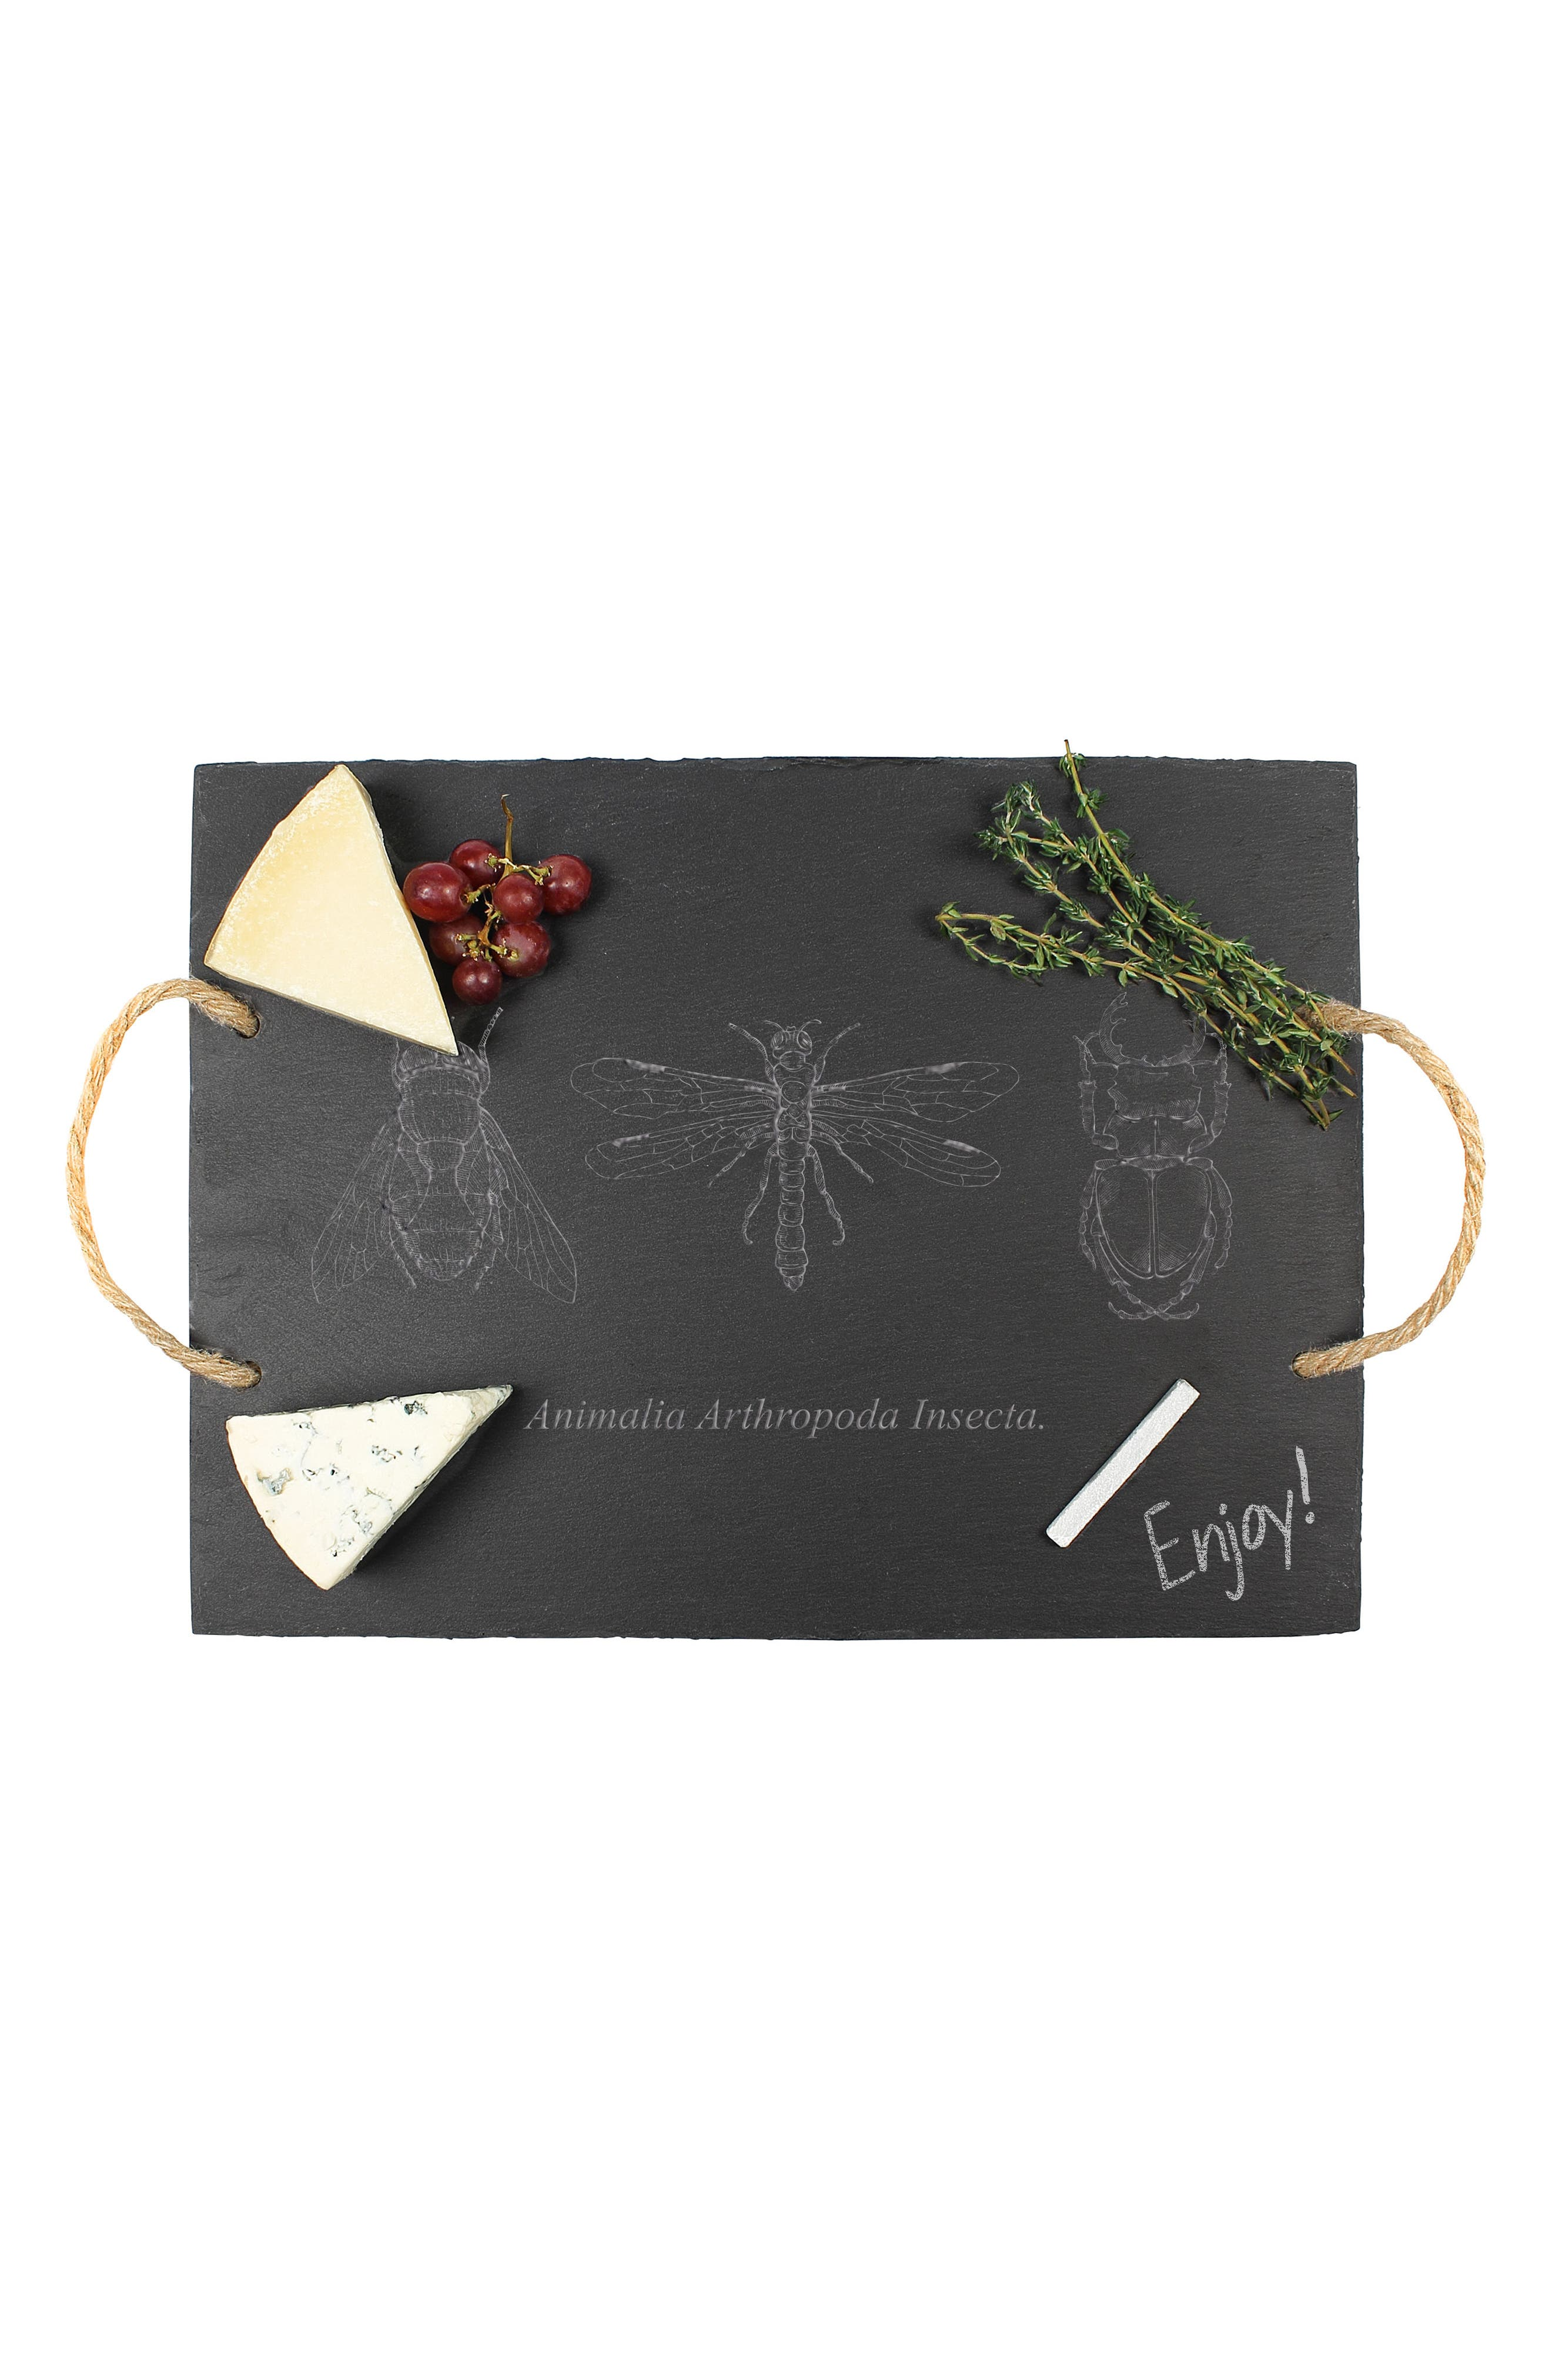 Insect Slate Tray,                             Alternate thumbnail 2, color,                             Black